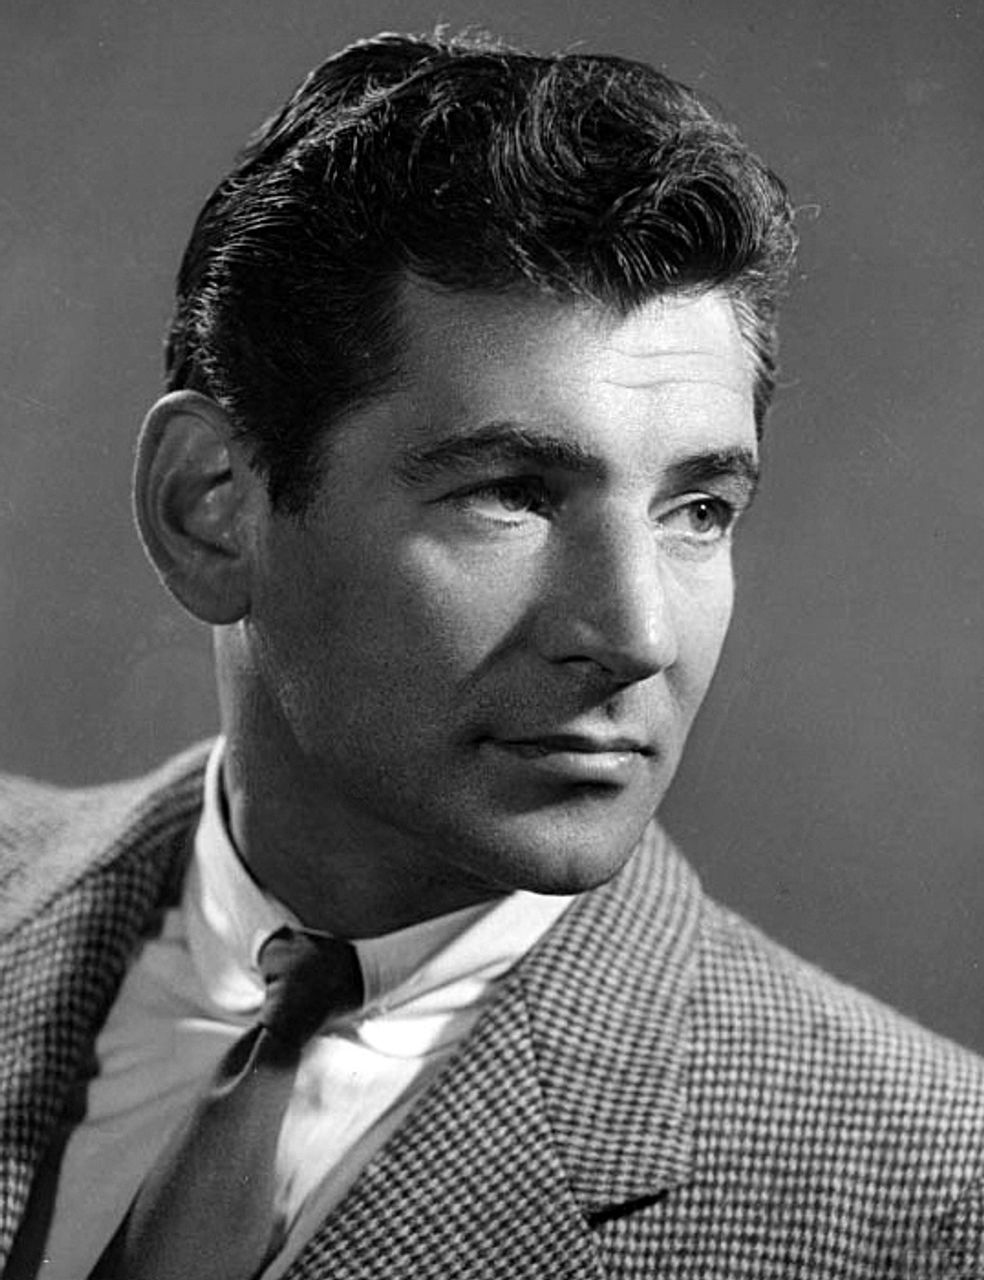 Leonard Bernstein in the 1950s